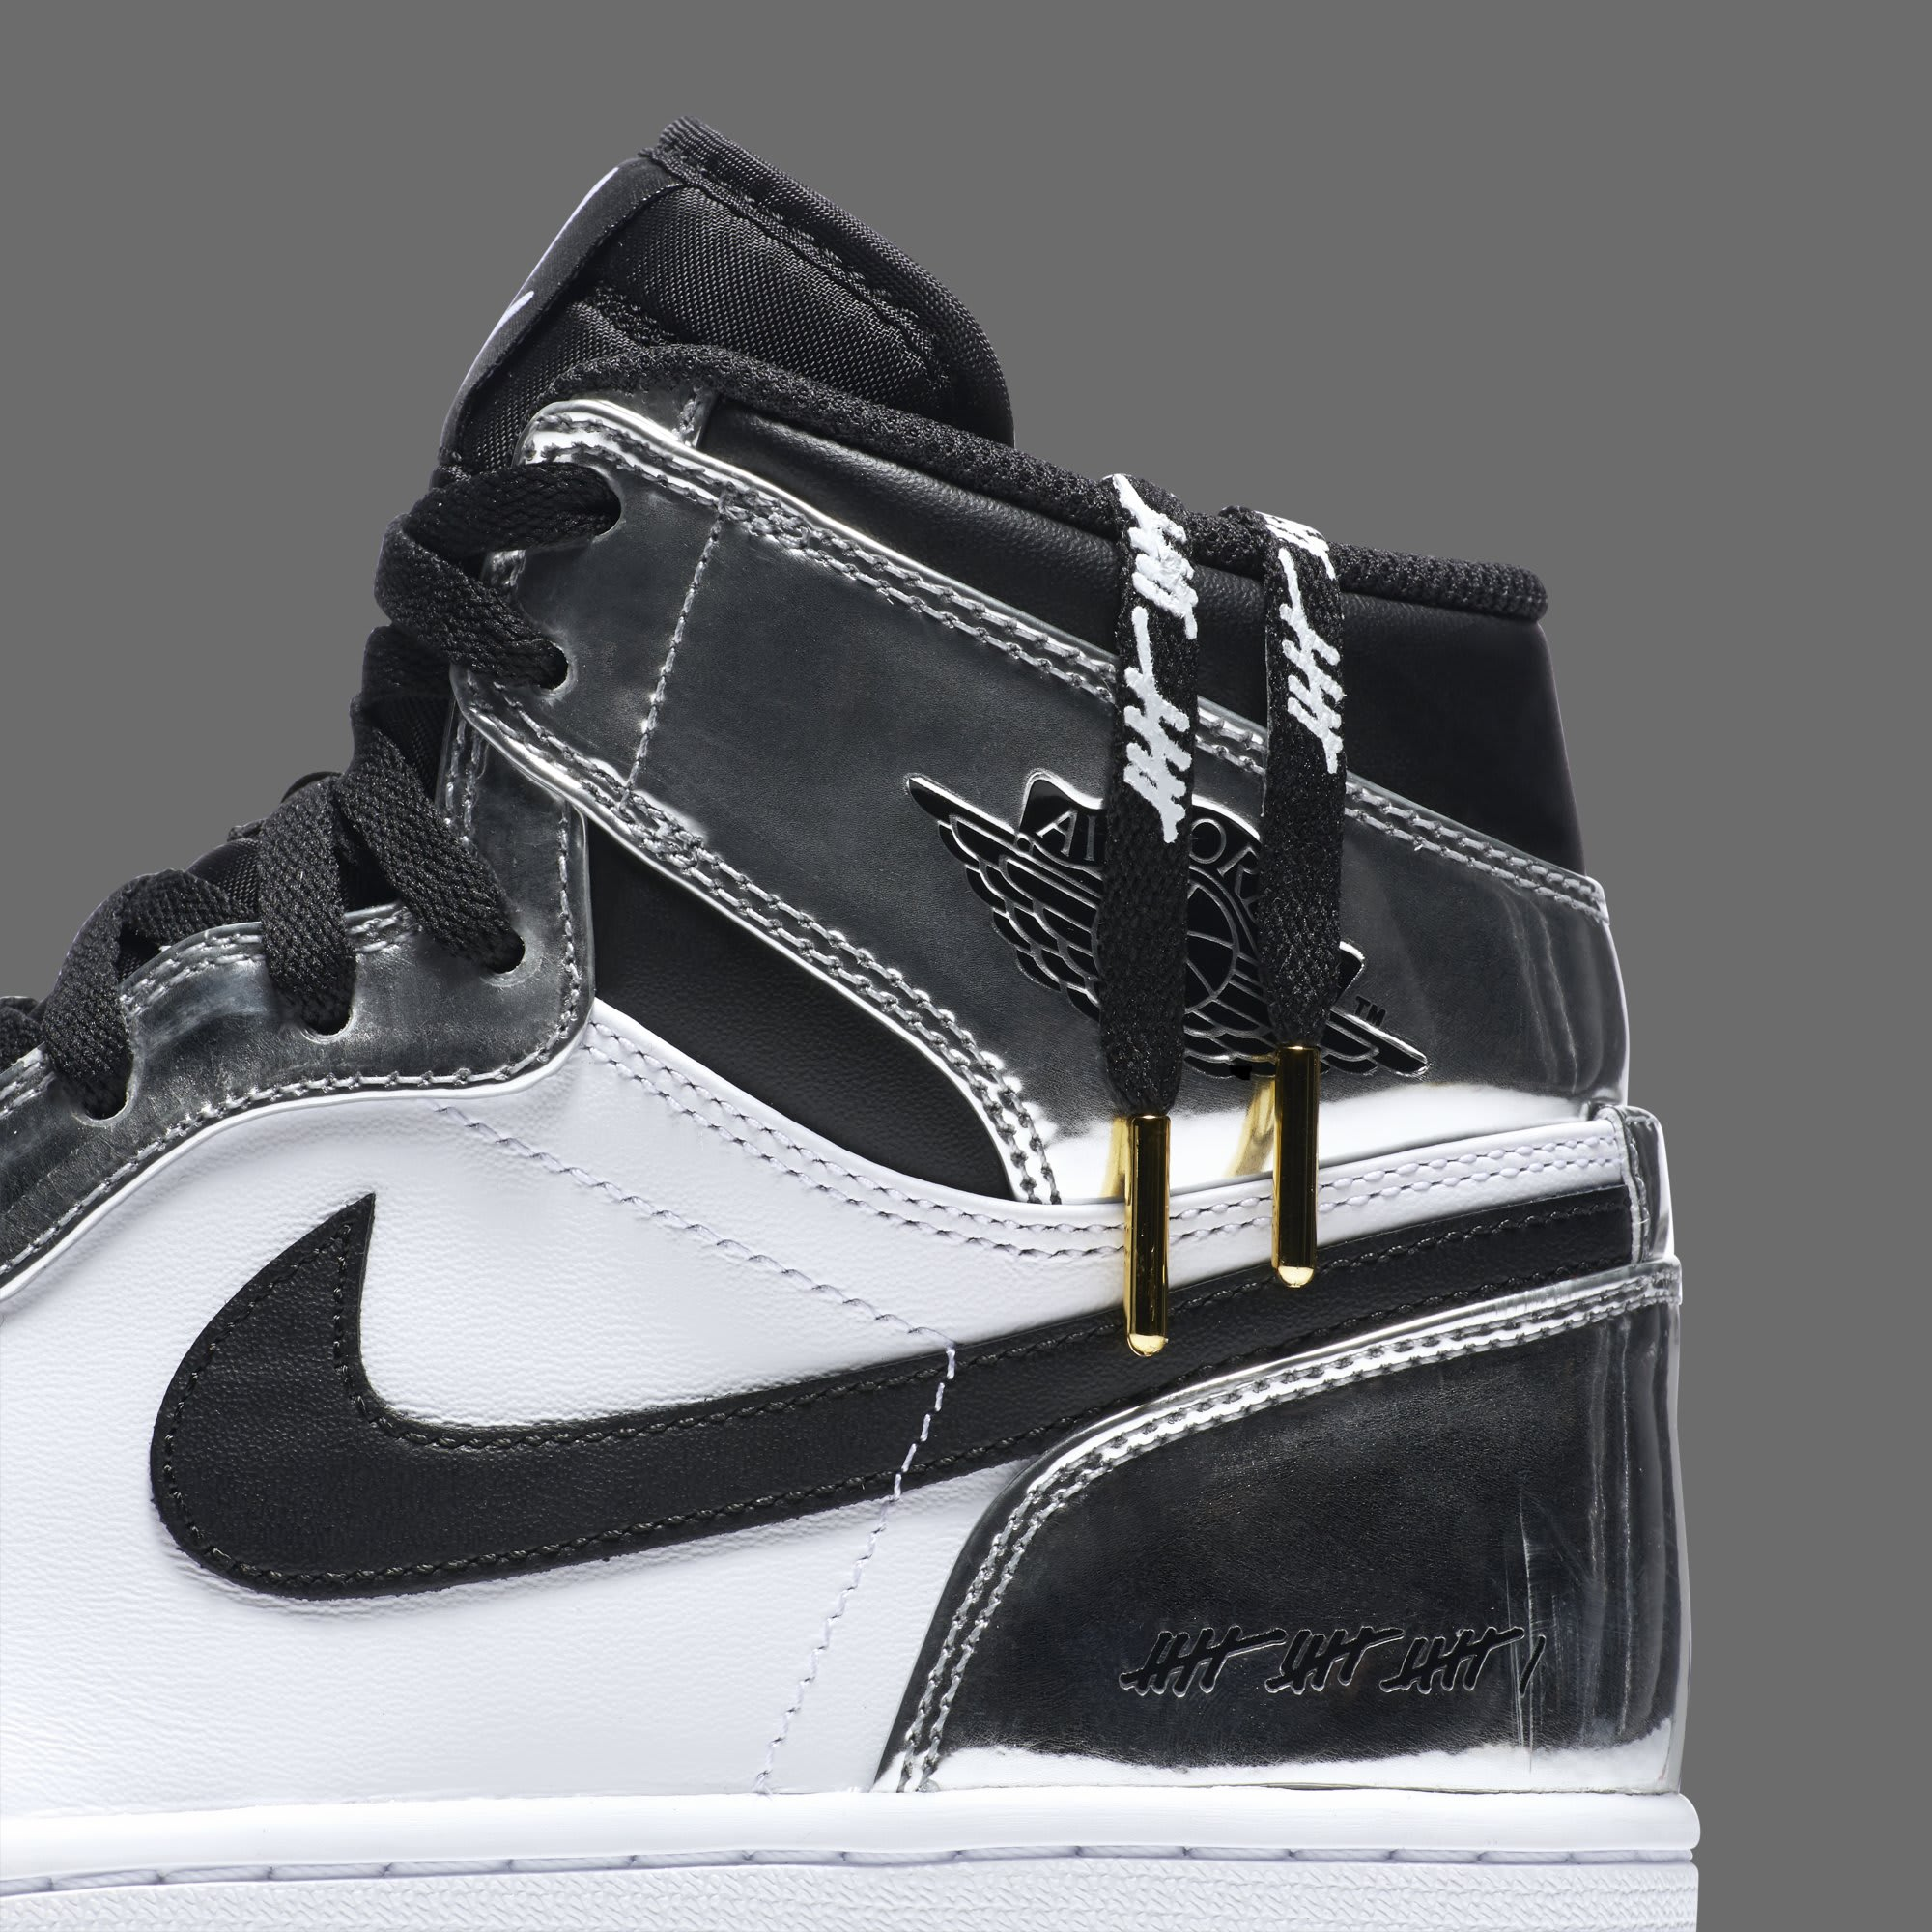 Air Jordan 1 High 'Pass the Torch' AQ7476-016 (Detail)